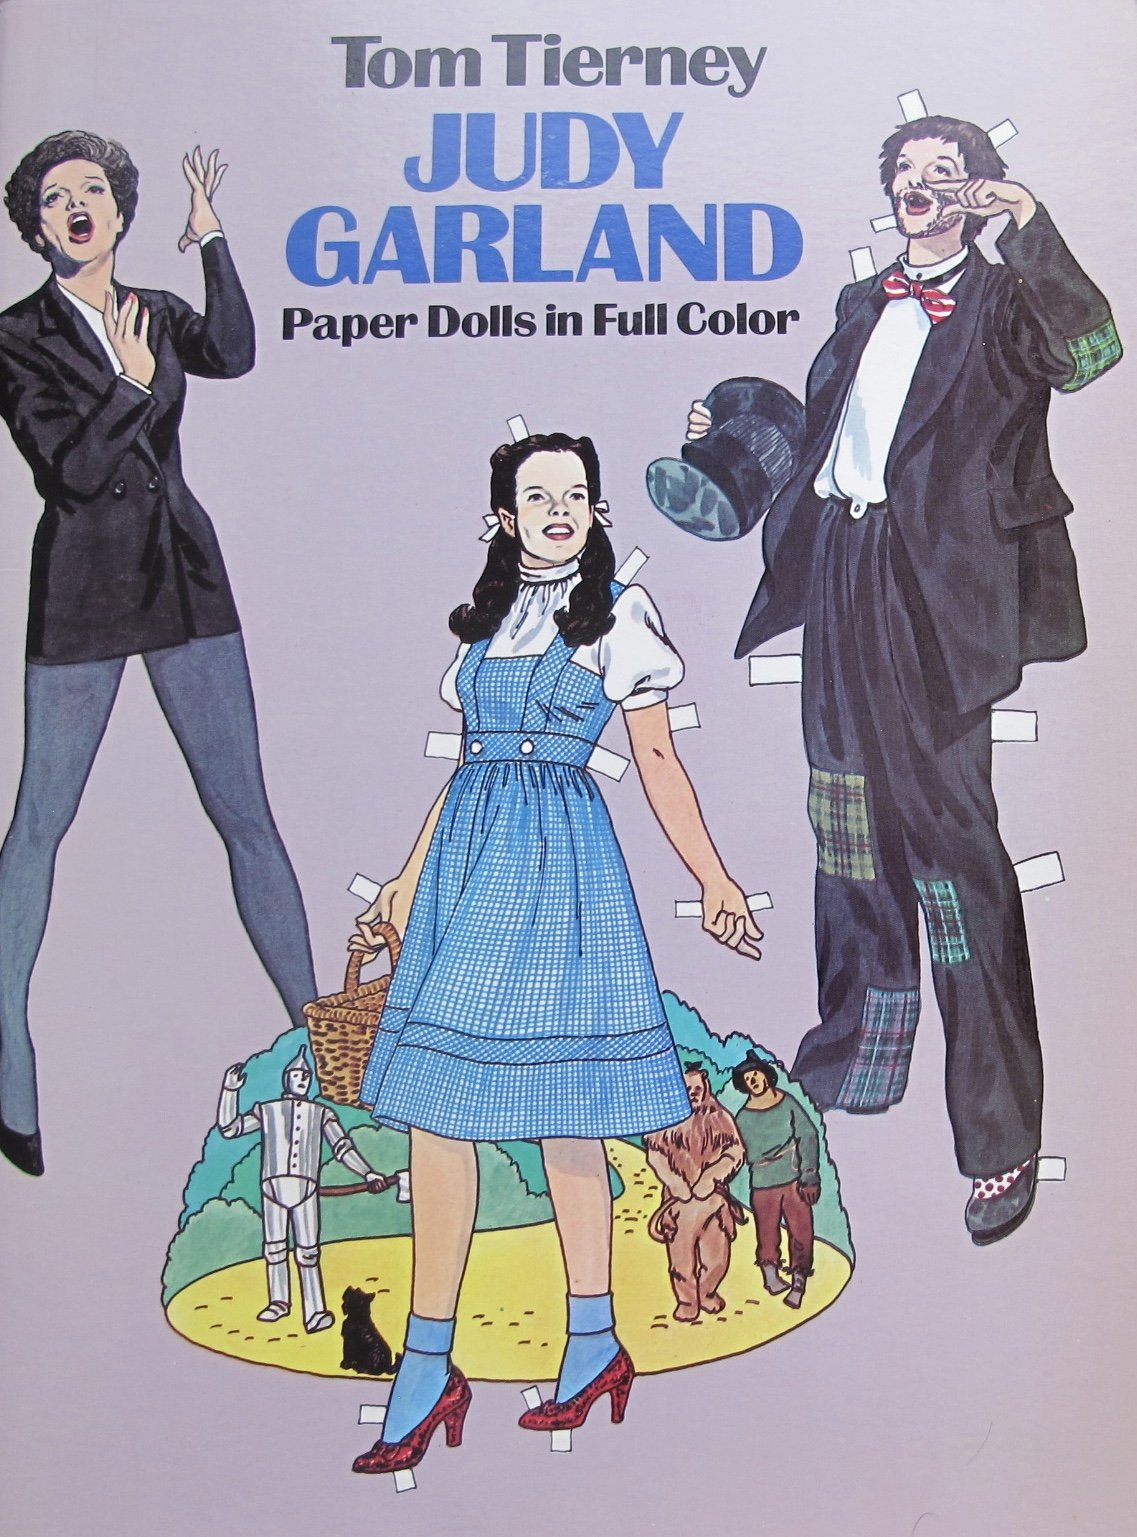 Tom Tierney JUDY GARLAND PAPER DOLLS BOOK (UNCUT) in Full COLOR w 2 Card Stock JUDY Cut-Out DOLLS & Fashions (1982 Dover)